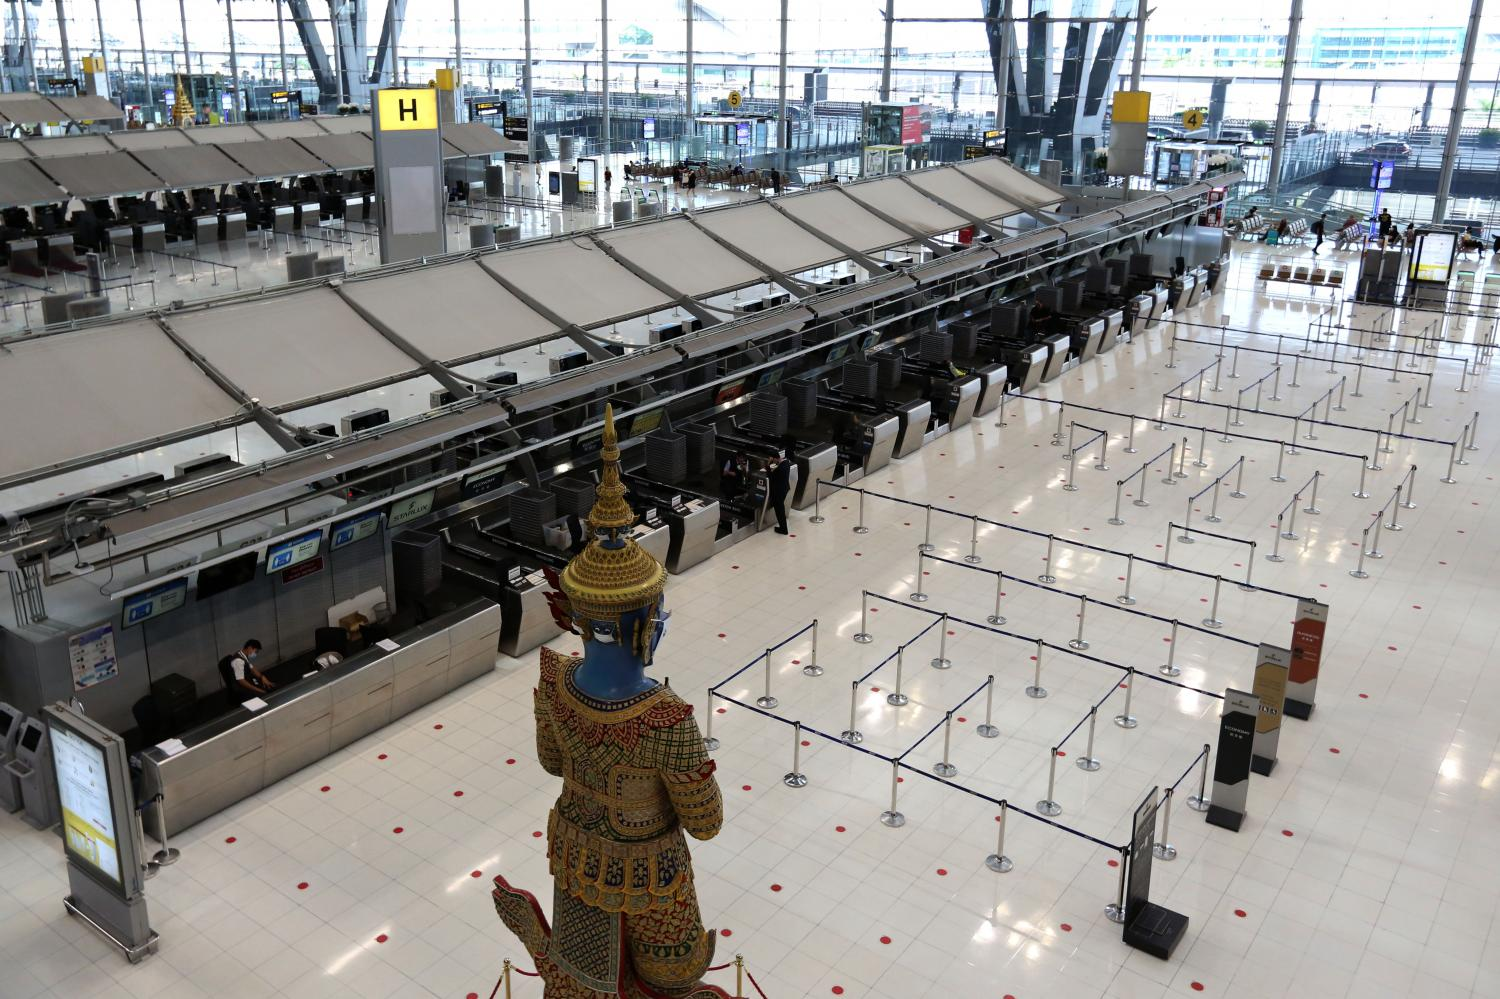 Suvarnabhumi airport is almost deserted during the current third wave of Covid-19. To help curb the transmission, the Civil Aviation Authority of Thailand has asked for the suspension of all domestic flights between 10pm and 4am. (Photo by Wichan Charoenkiatpakul)